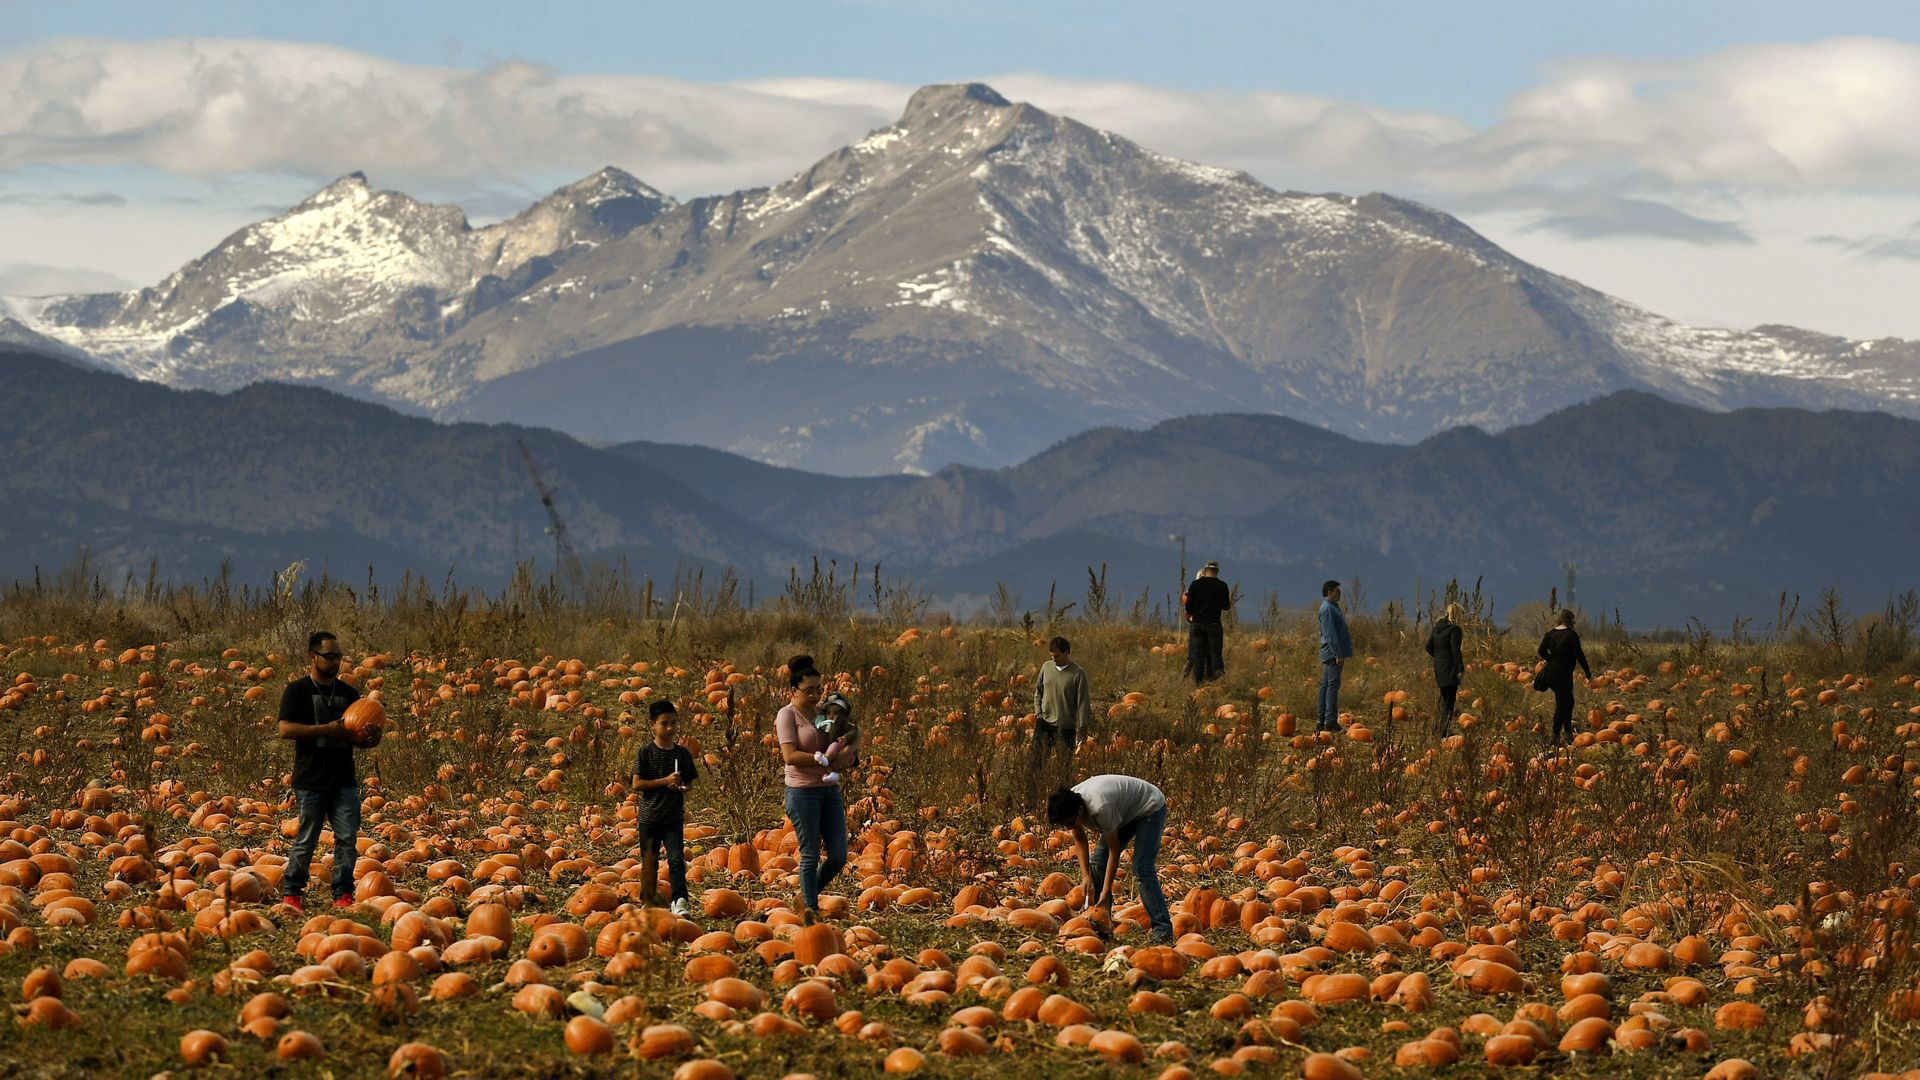 Rock Creek Farm Pumpkin Patch in Broomfield, one of Yelp's top-rated patches in the country.